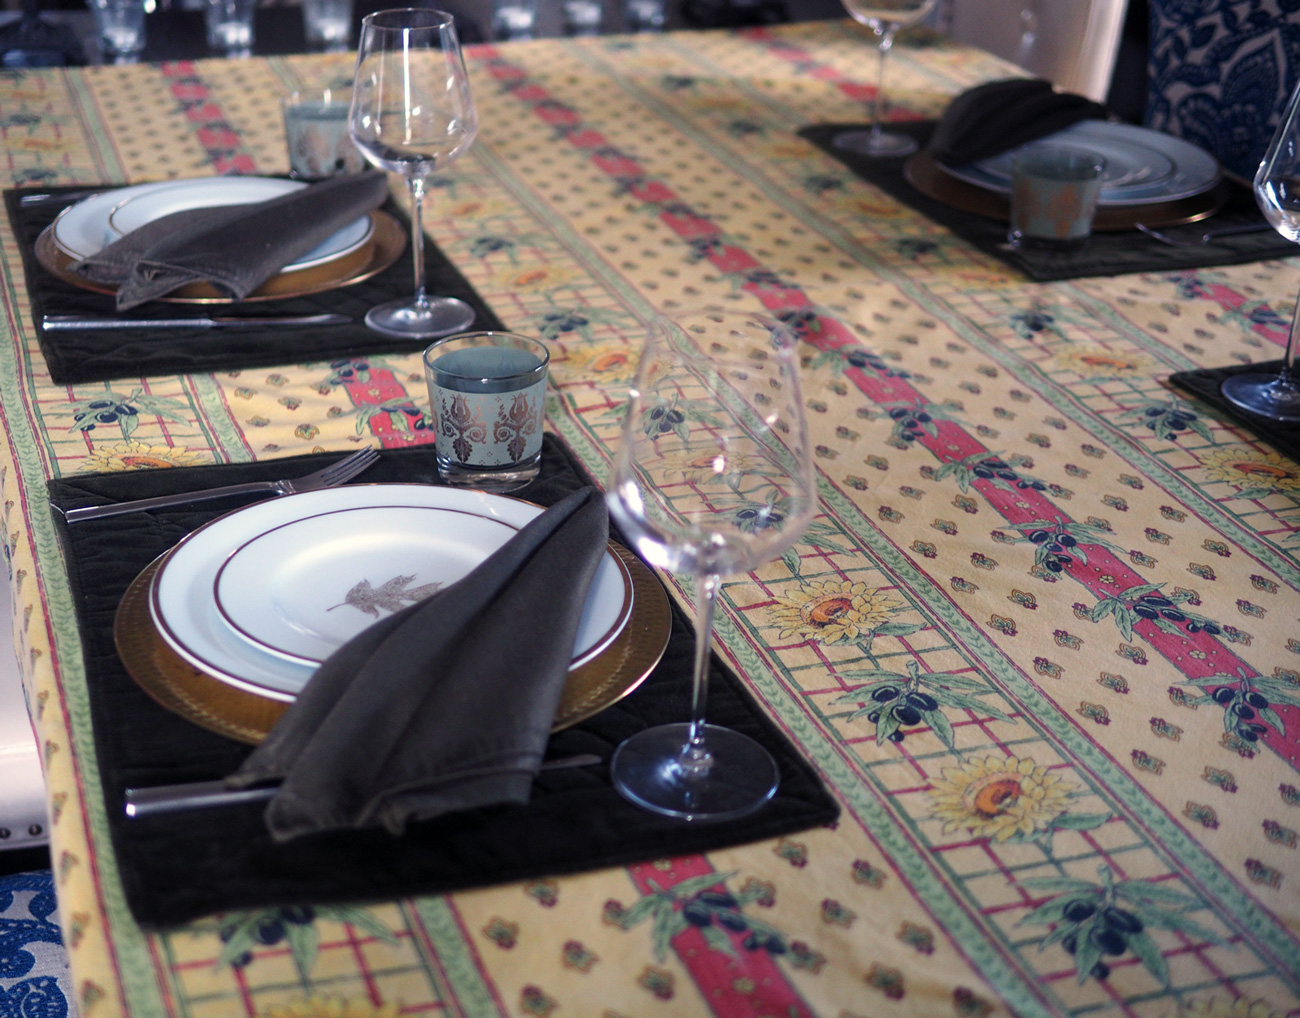 A nod to the Mediterranean using a Provencal tablecloth. Simple. No fuss.